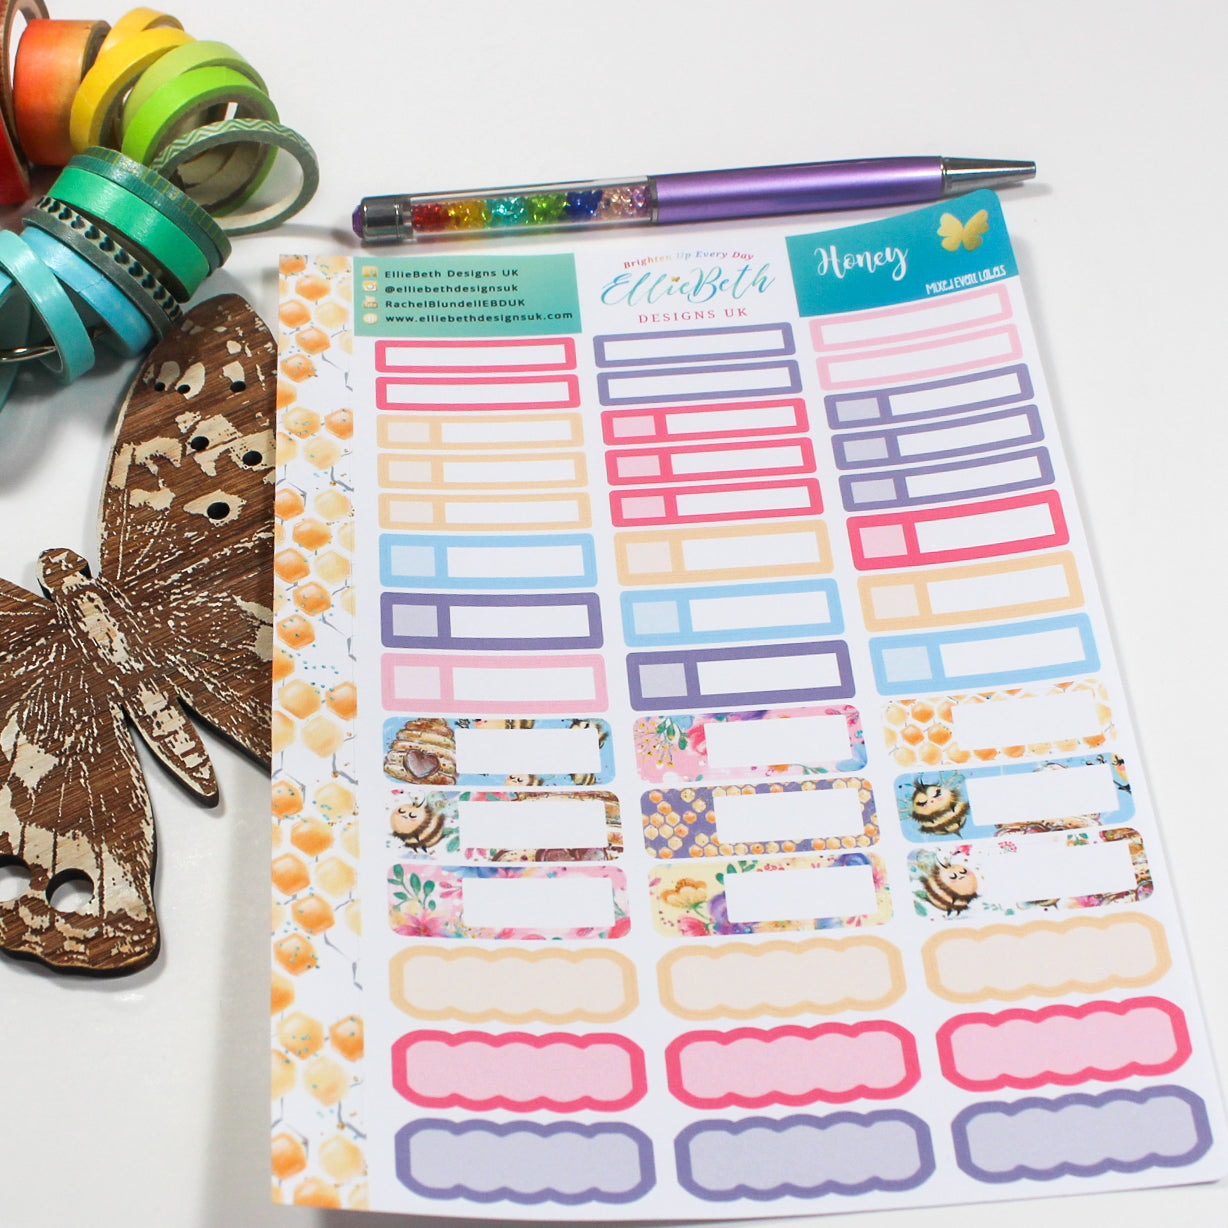 'Honey' - Mixed Event Labels -  A5 binder ready planner stickers